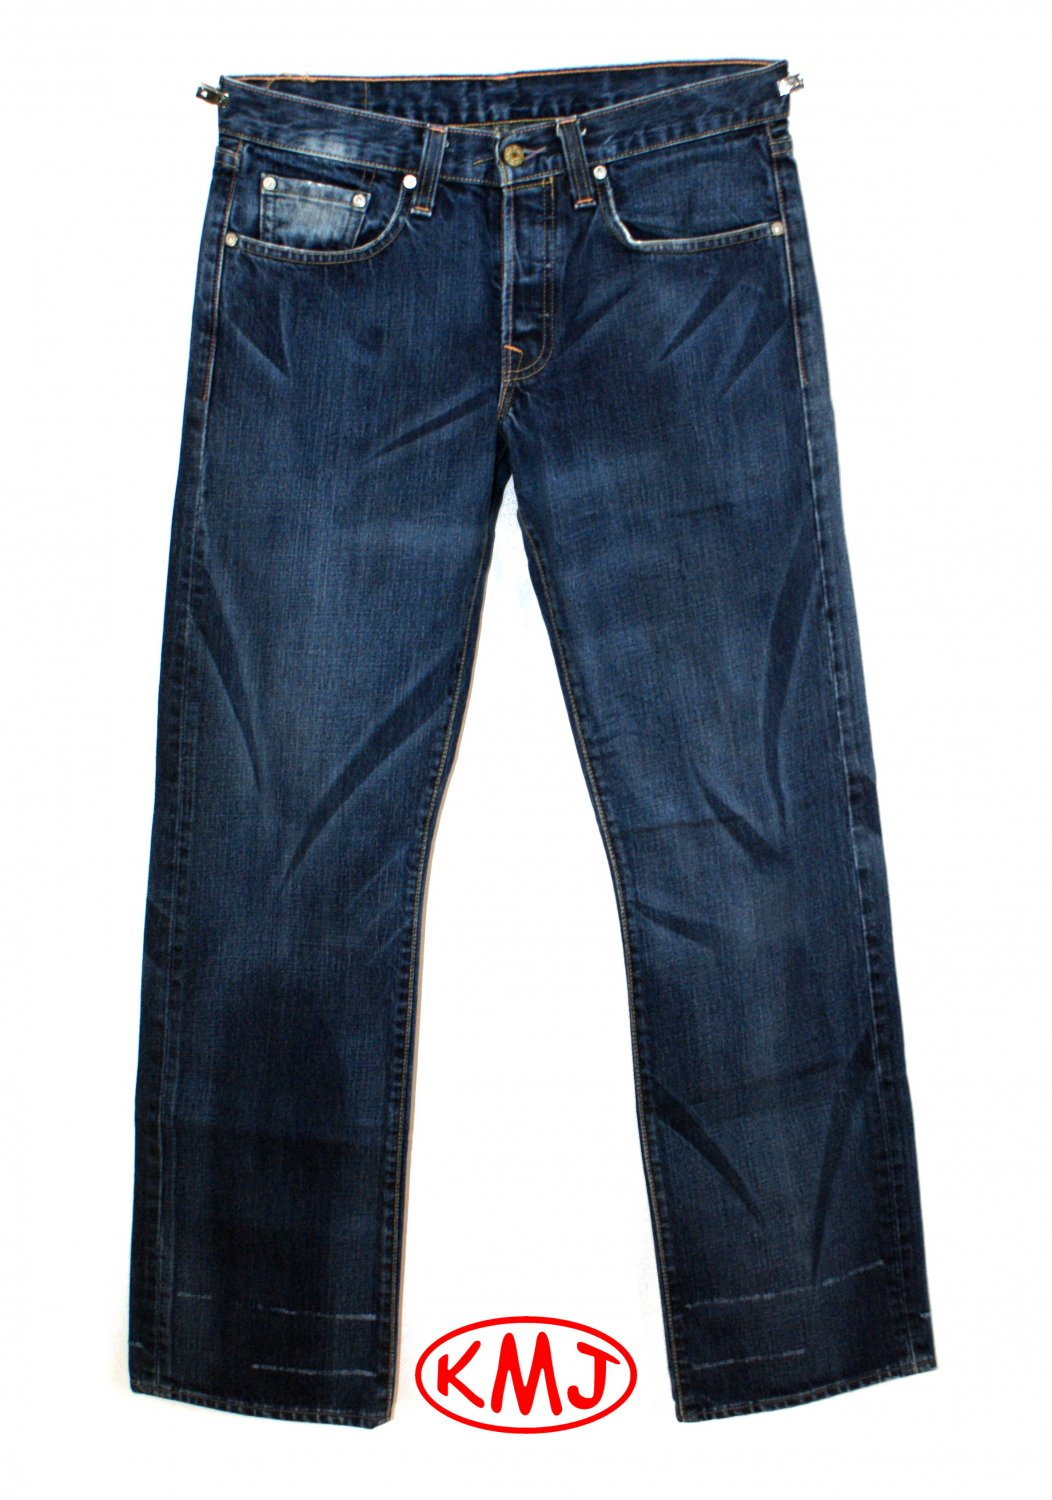 LEVI'S PREMIUM HESHER CAT SCRATCH BUTTON-FLY DENIM JEANS MADE IN USA W32 L32 (Actual size 32 33)